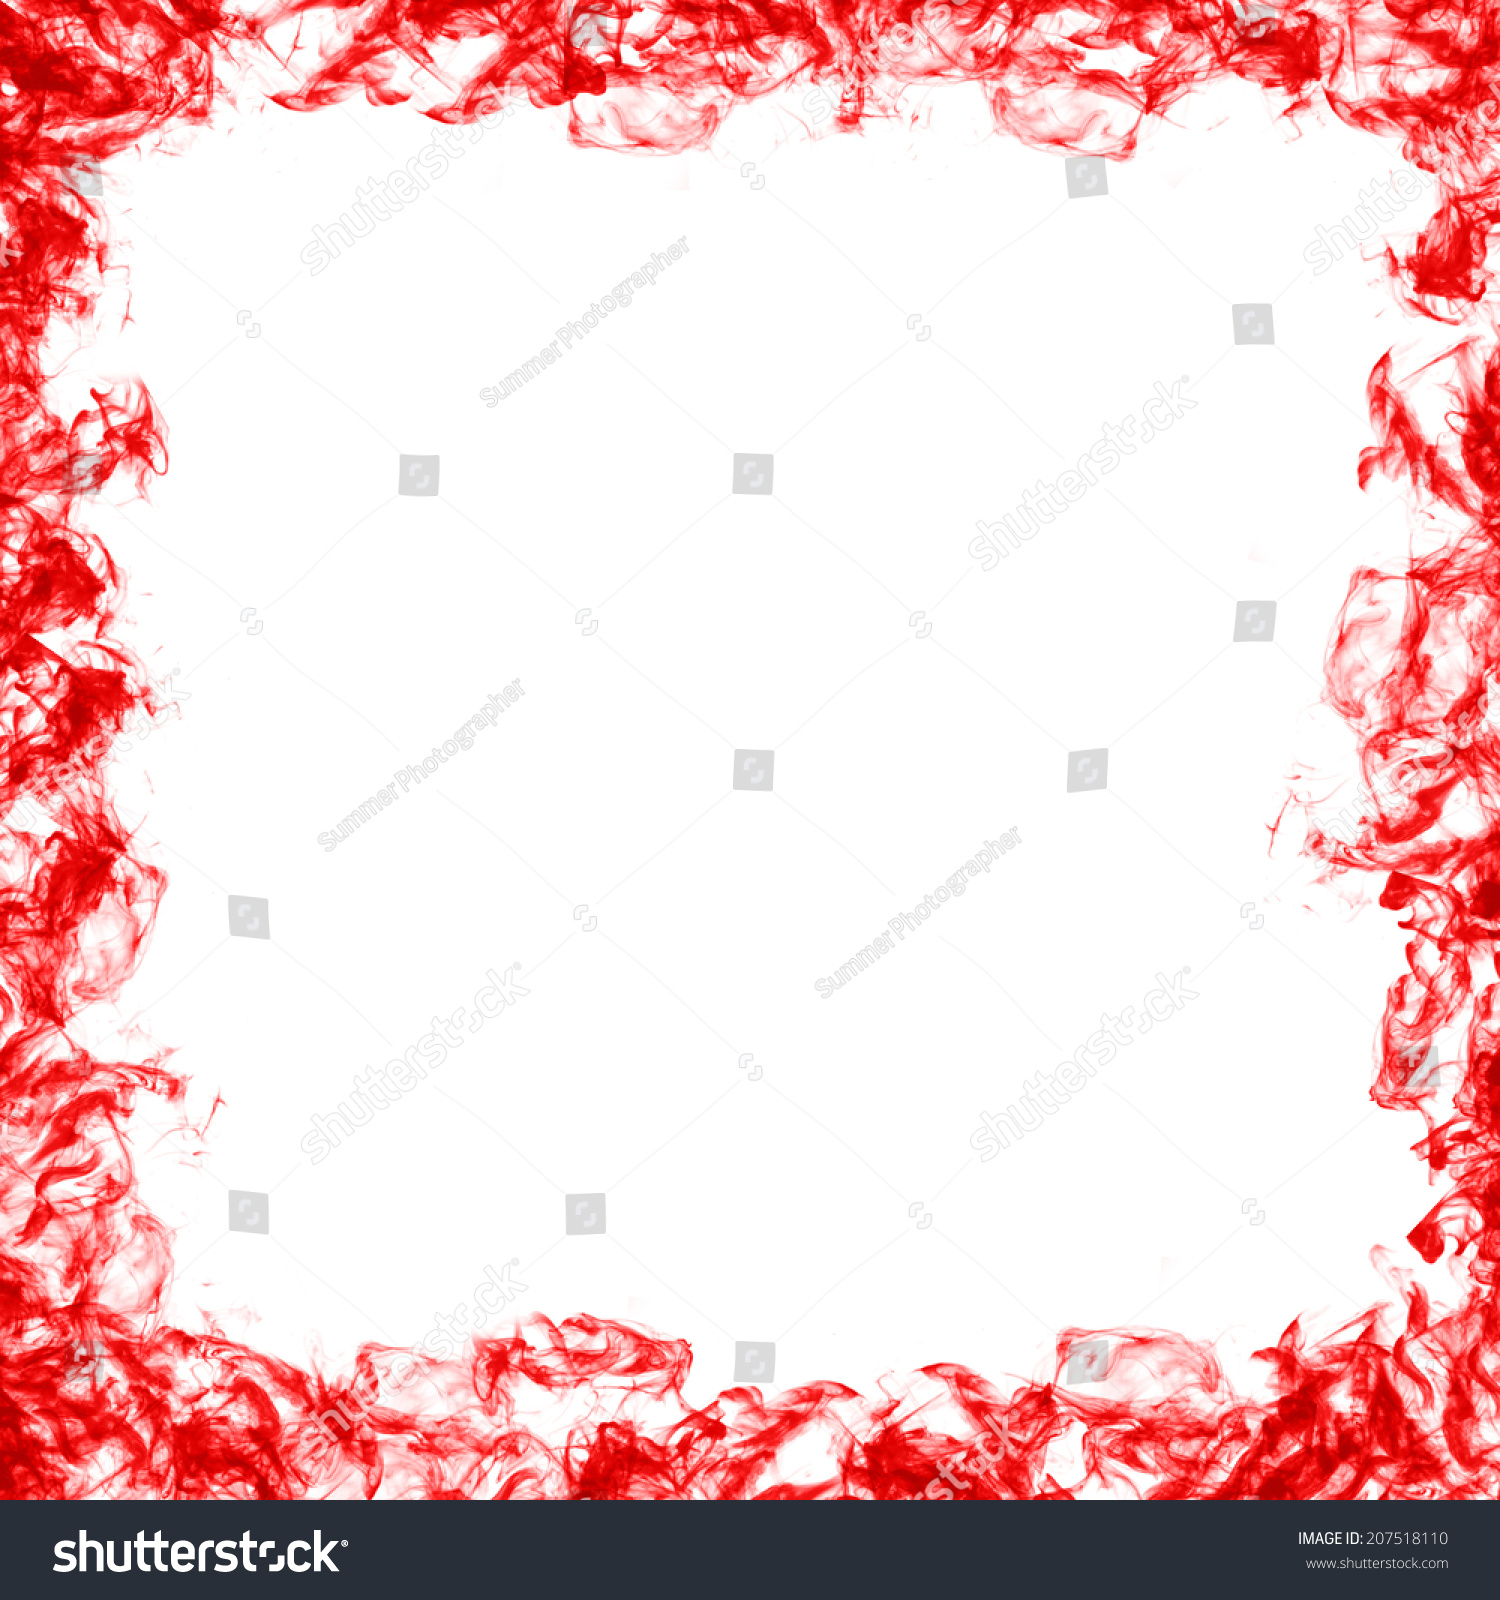 Red gift bows border with clipping path for easy background removing - Abstract Frame Red Smoke